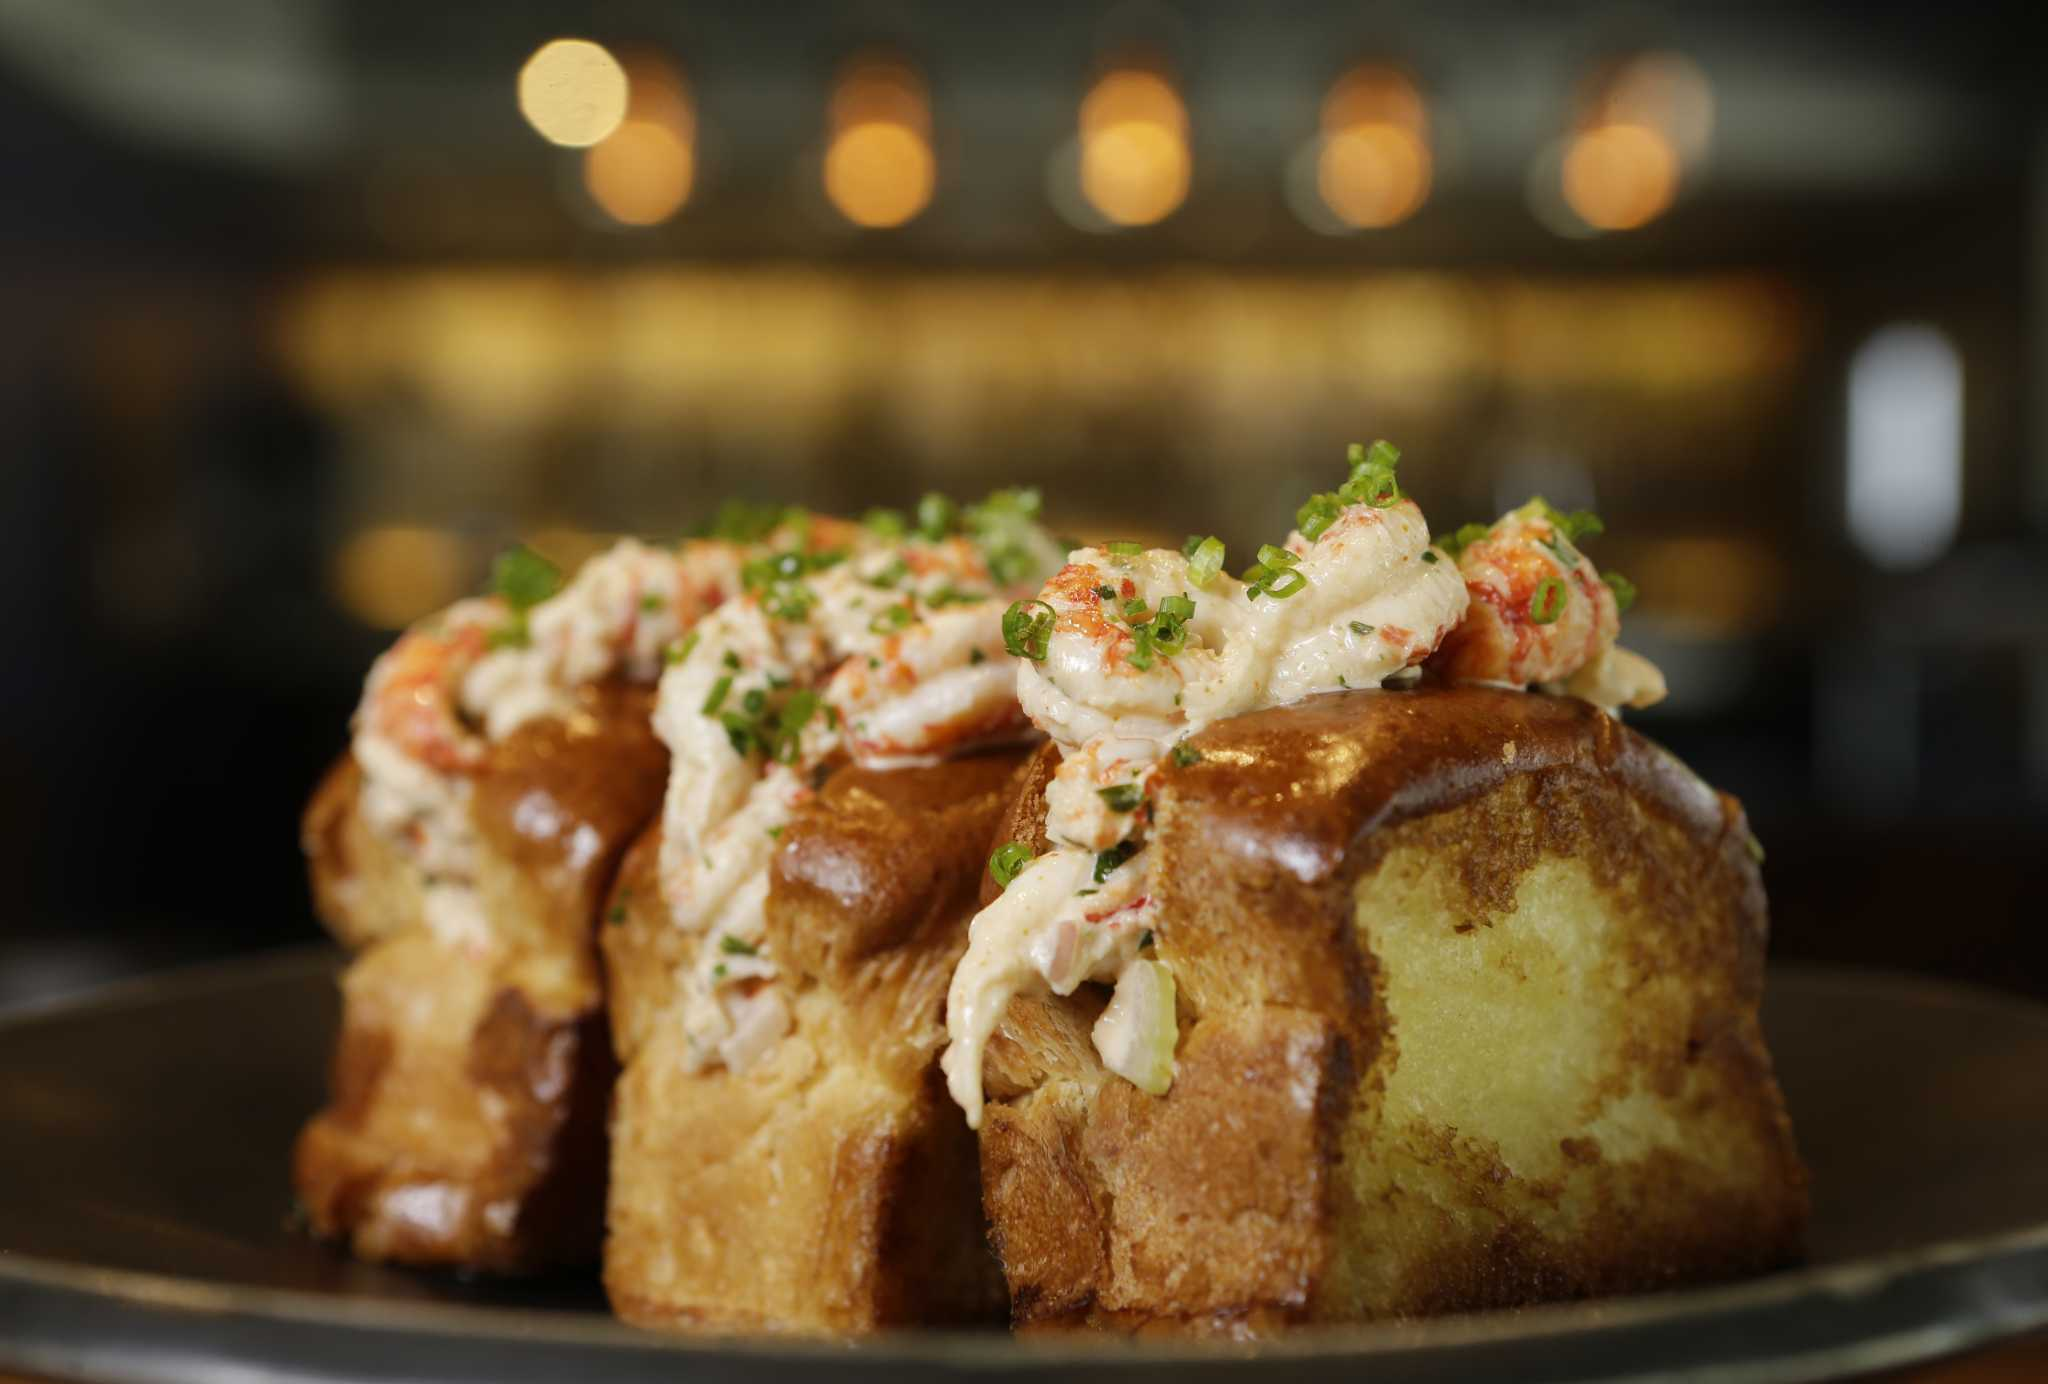 Houston restaurants see evolution in bar food menus for Snack bar cuisine